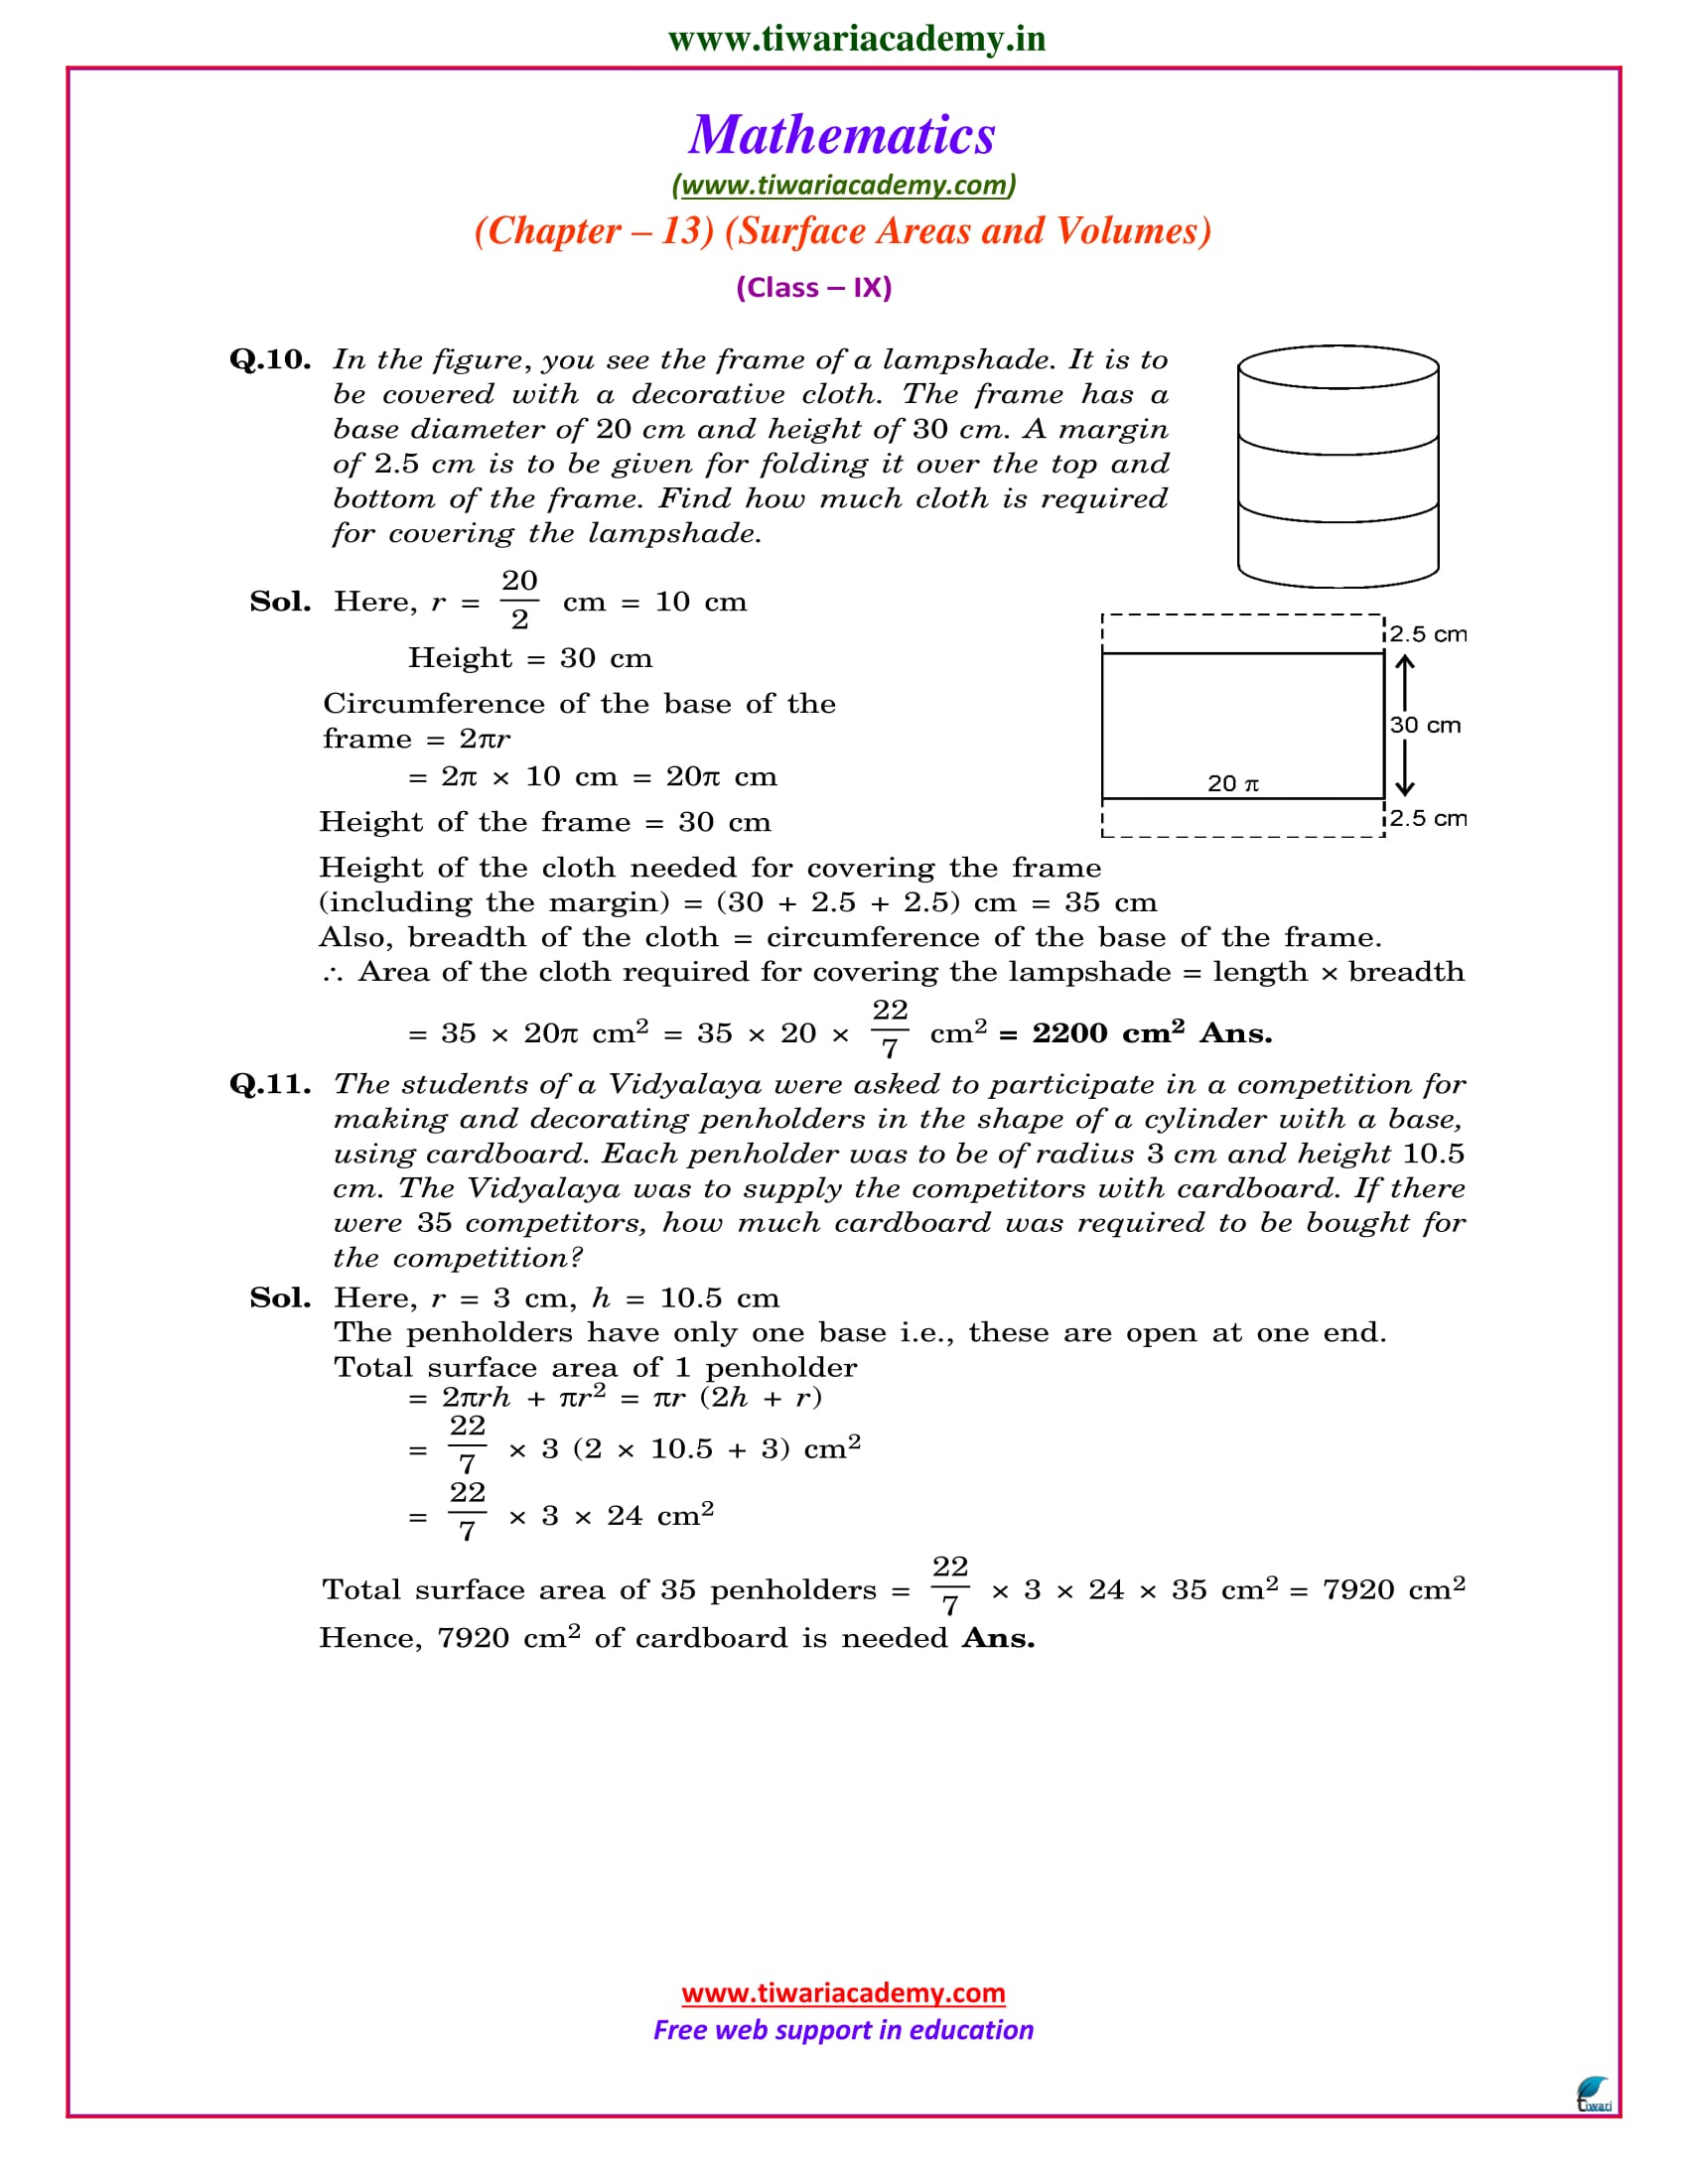 Class 9 Maths Chapter 13 Exercise 13.2 sols